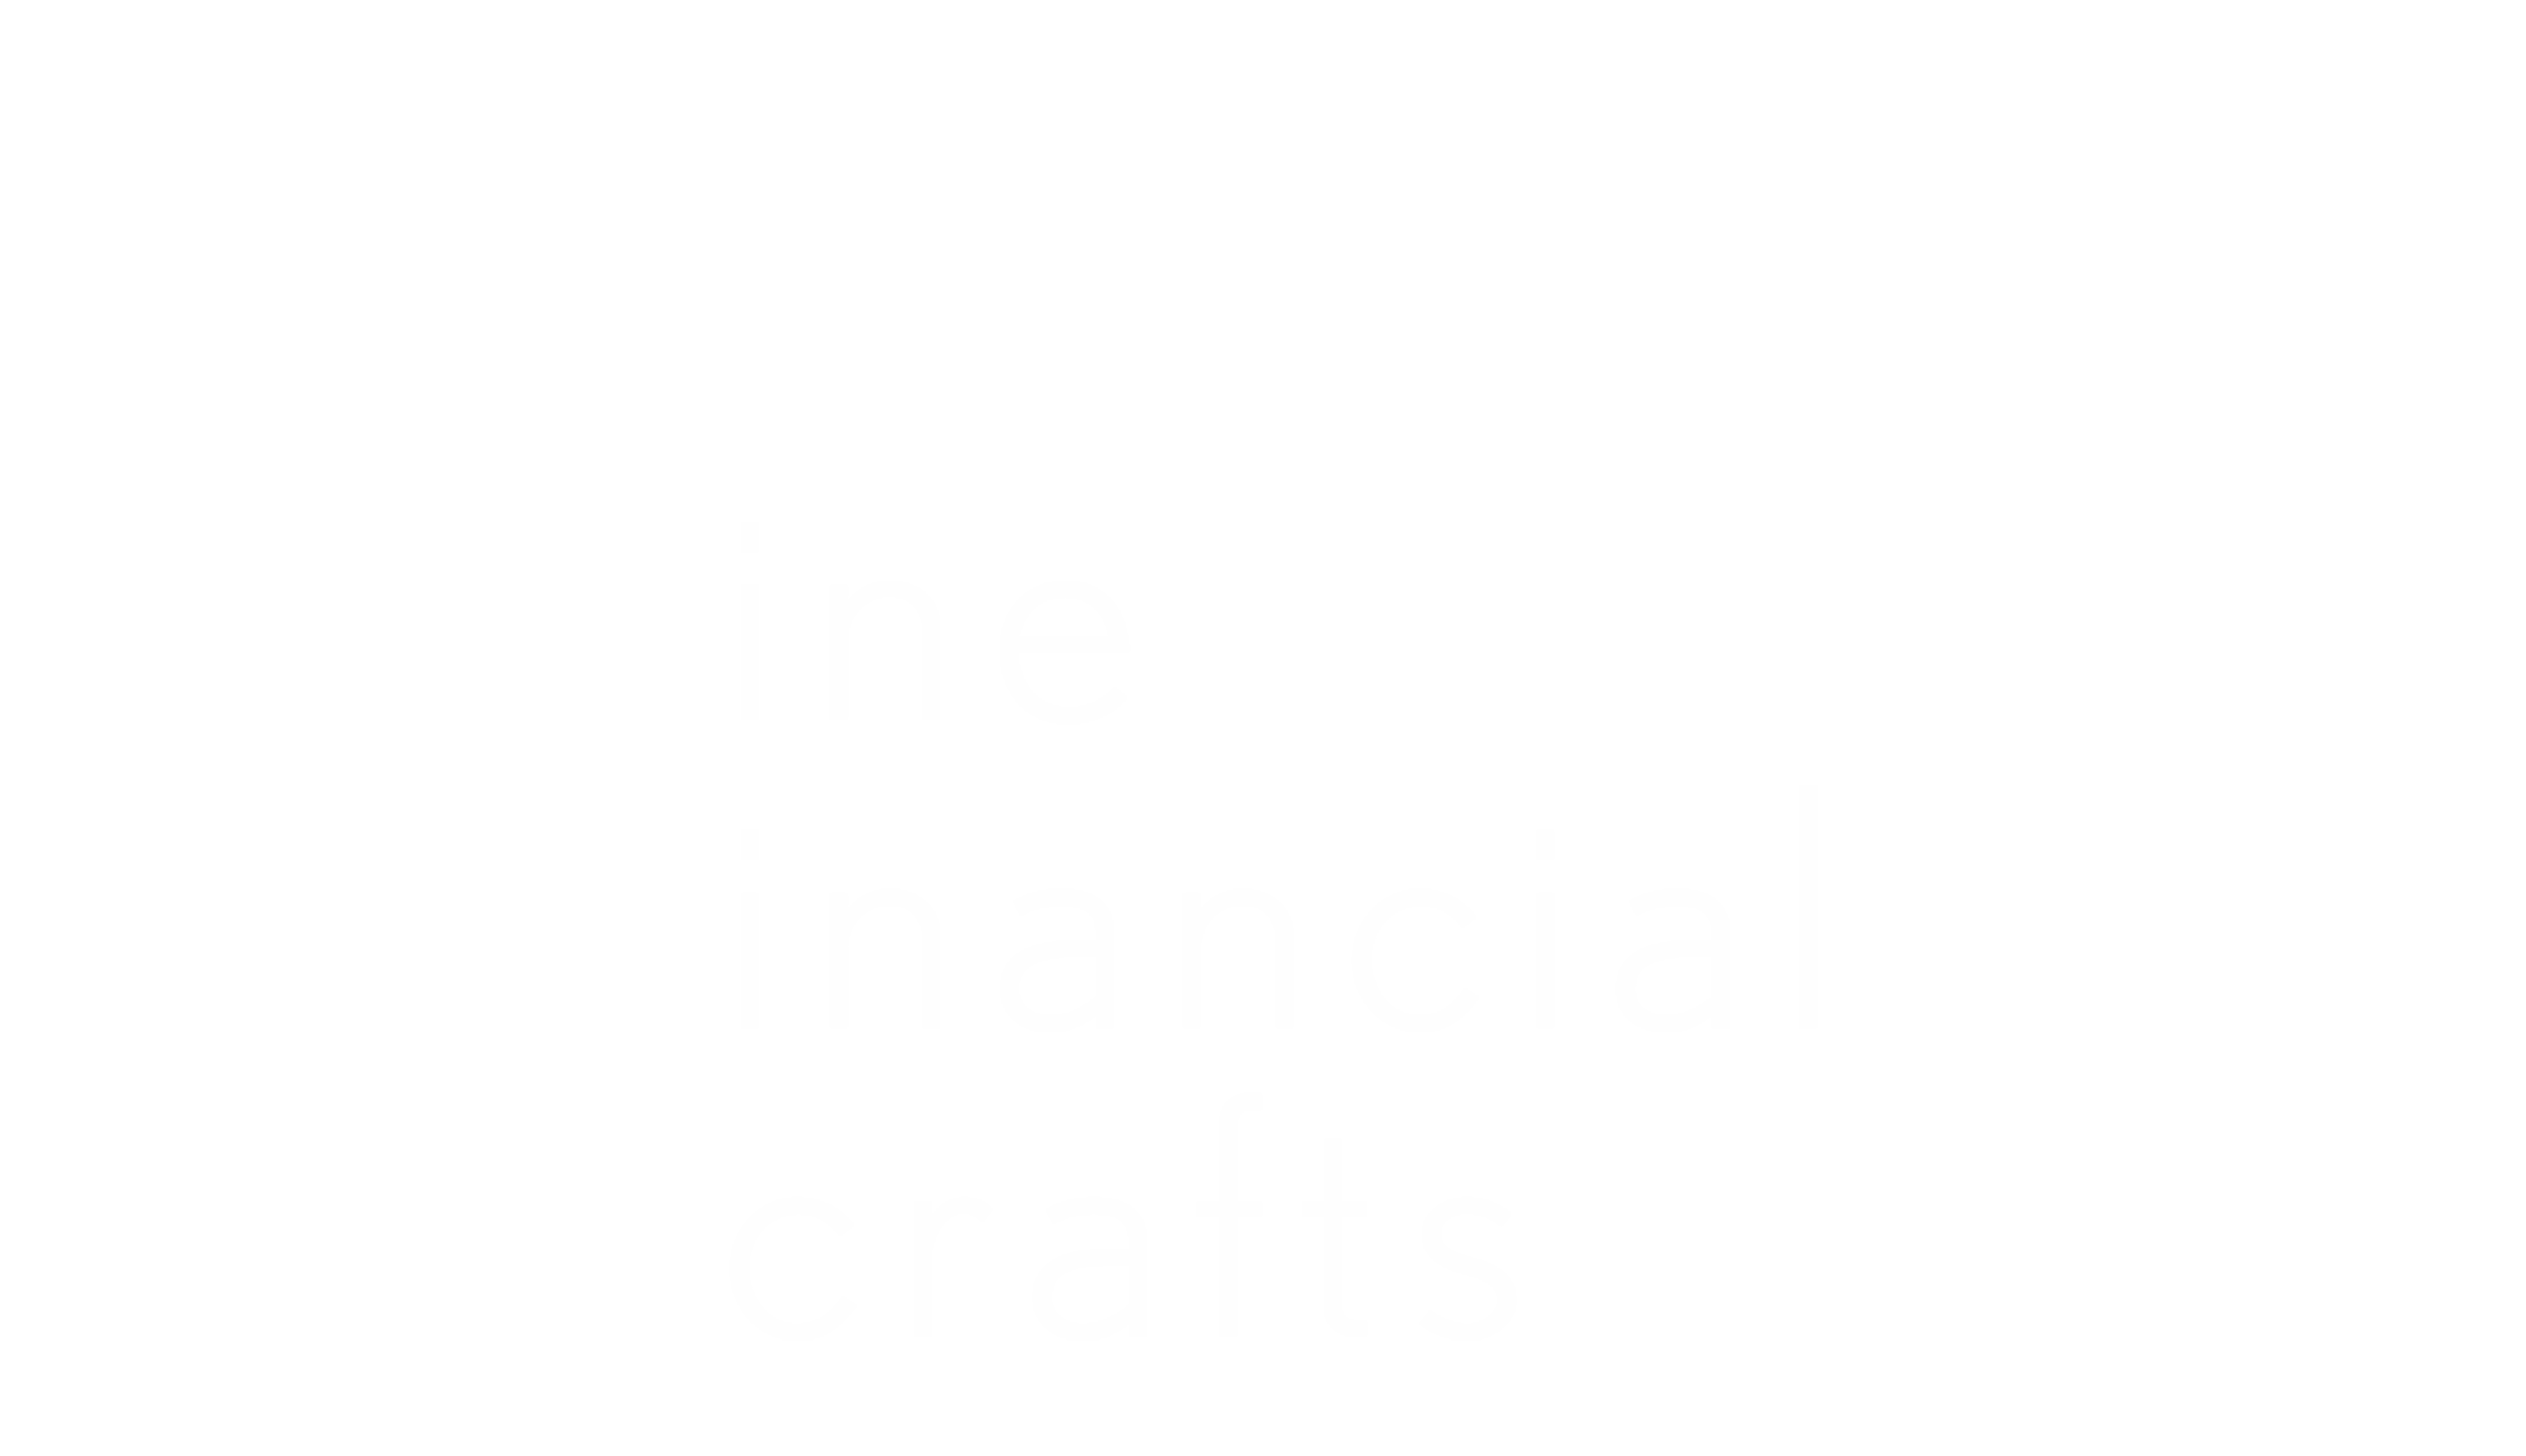 Fine Financial Crafts Company